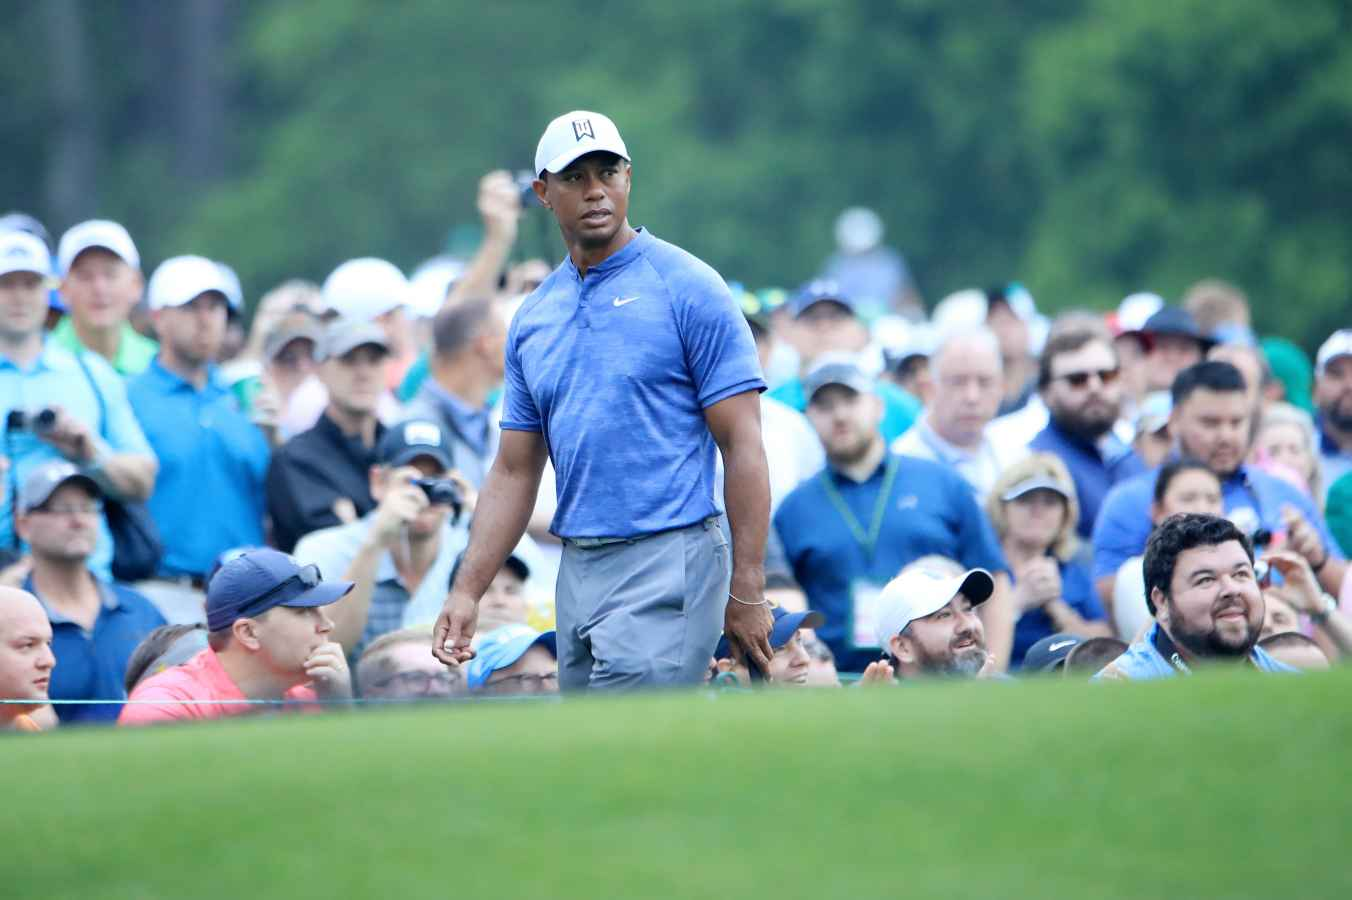 Tiger Woods at Augusta National, 8th March 2019